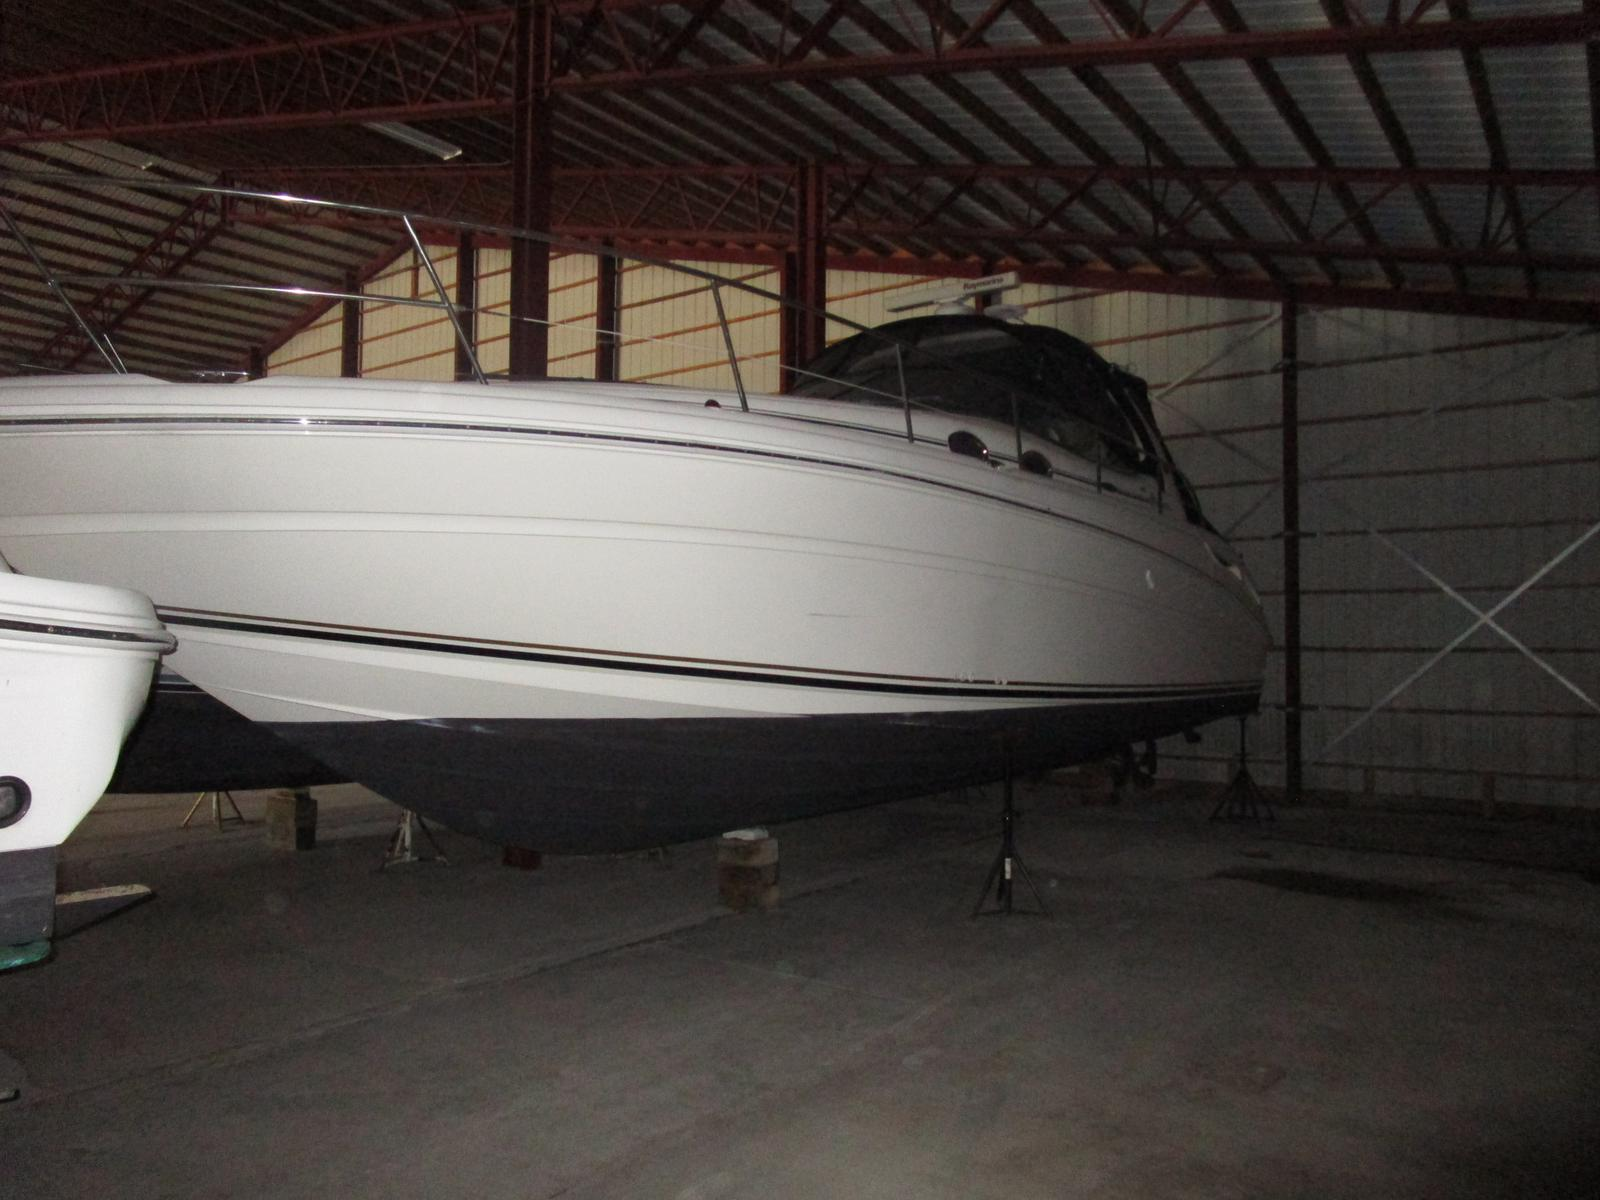 2003 Sea Ray boat for sale, model of the boat is 360 Sundancer & Image # 1 of 8